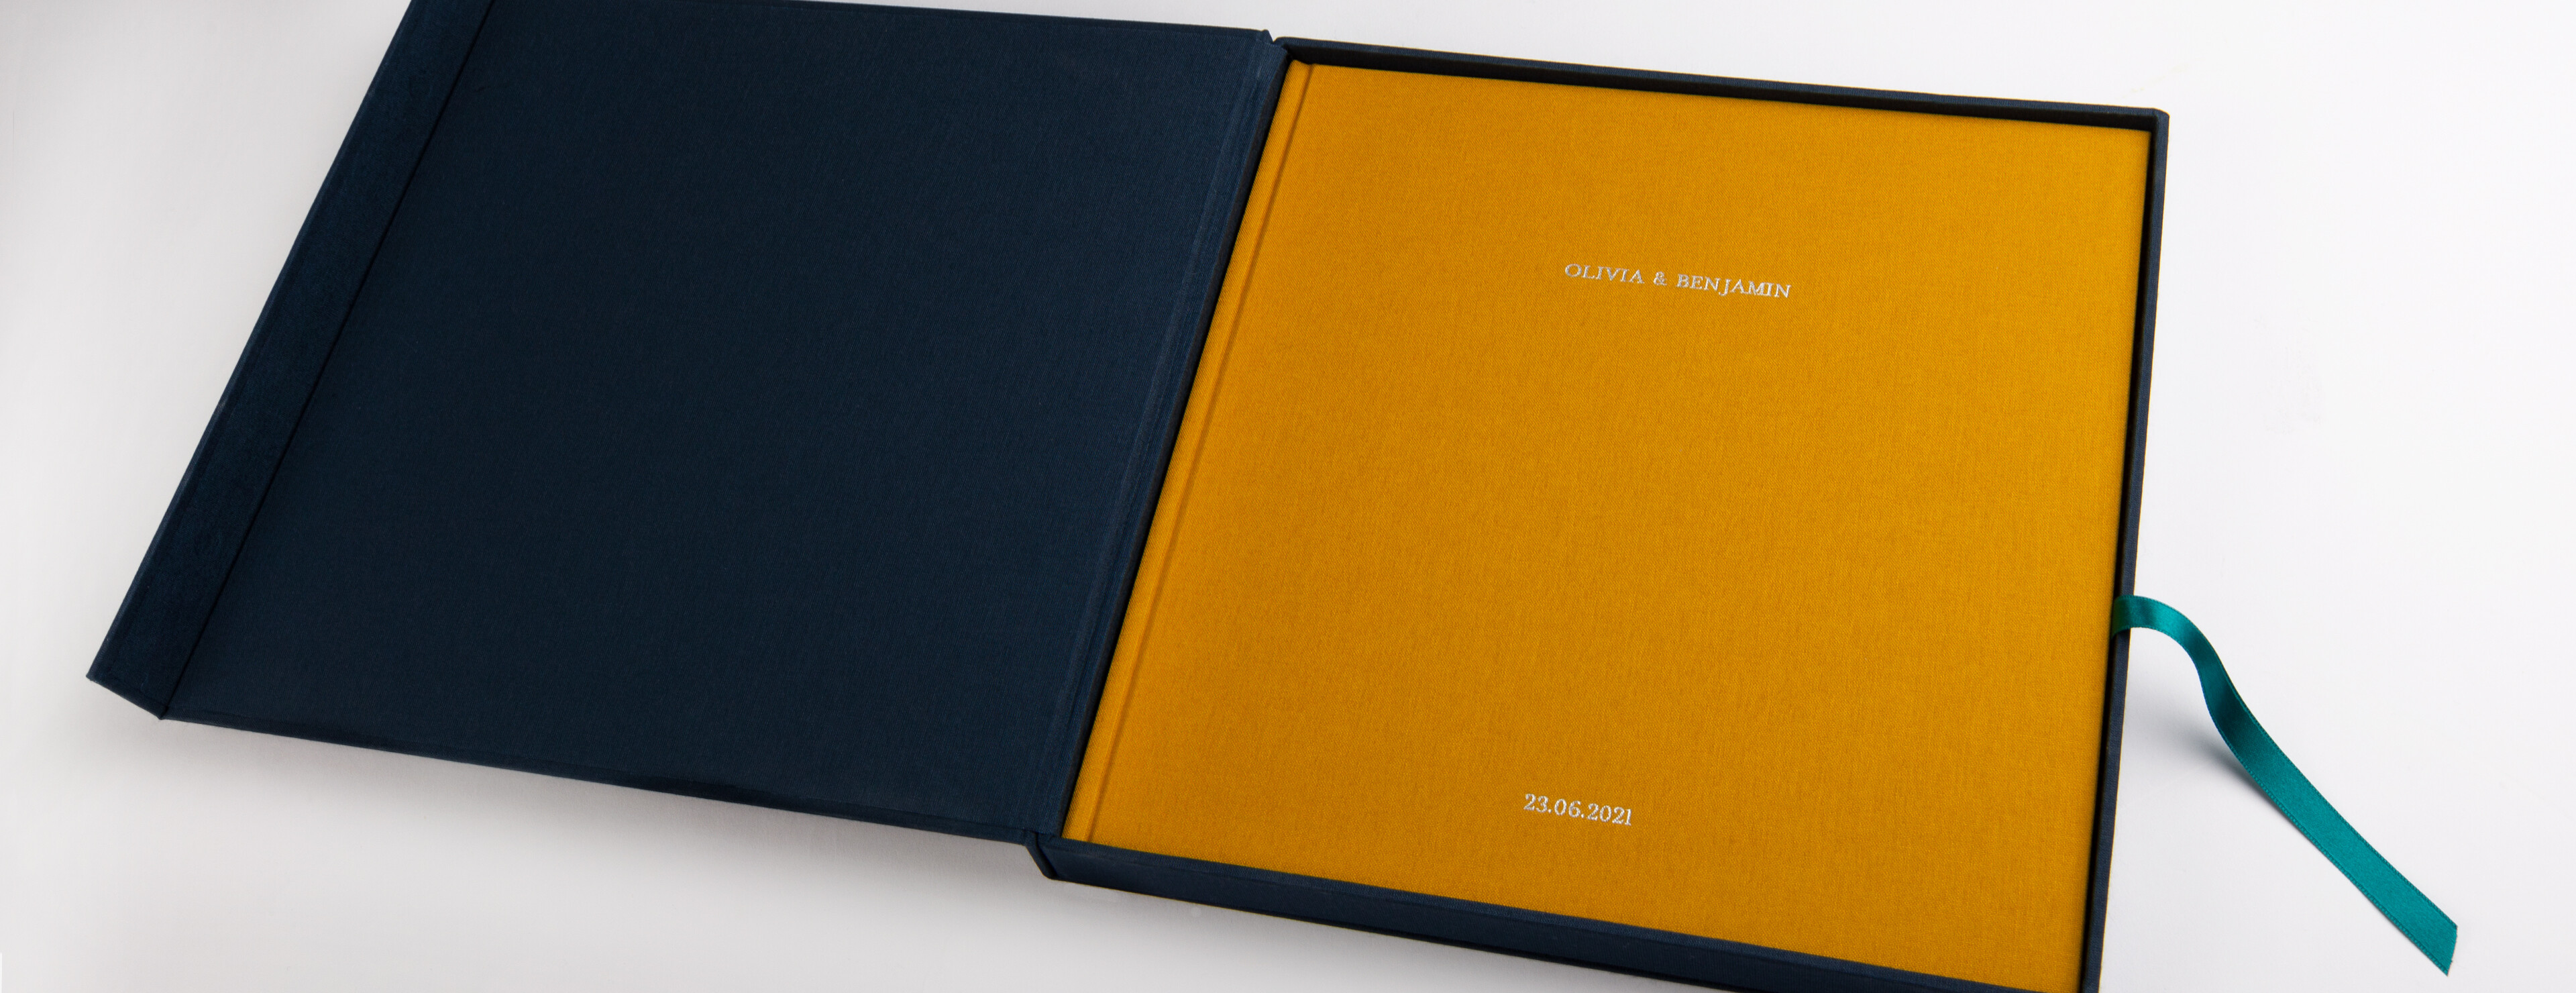 Luxury fabric Hardcover Photo Book Covers